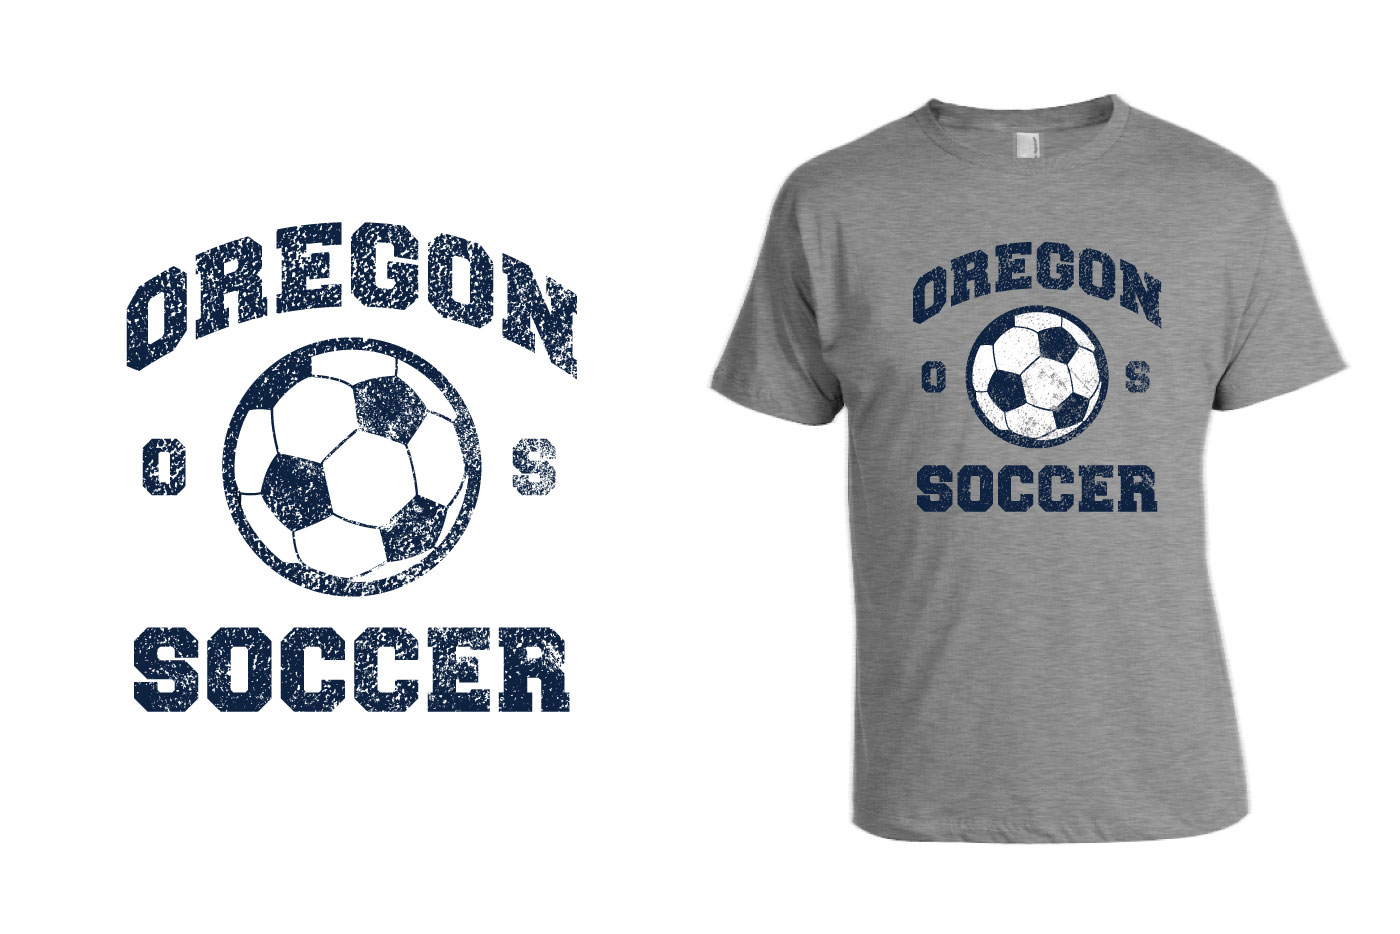 soccer t-shirt graphic